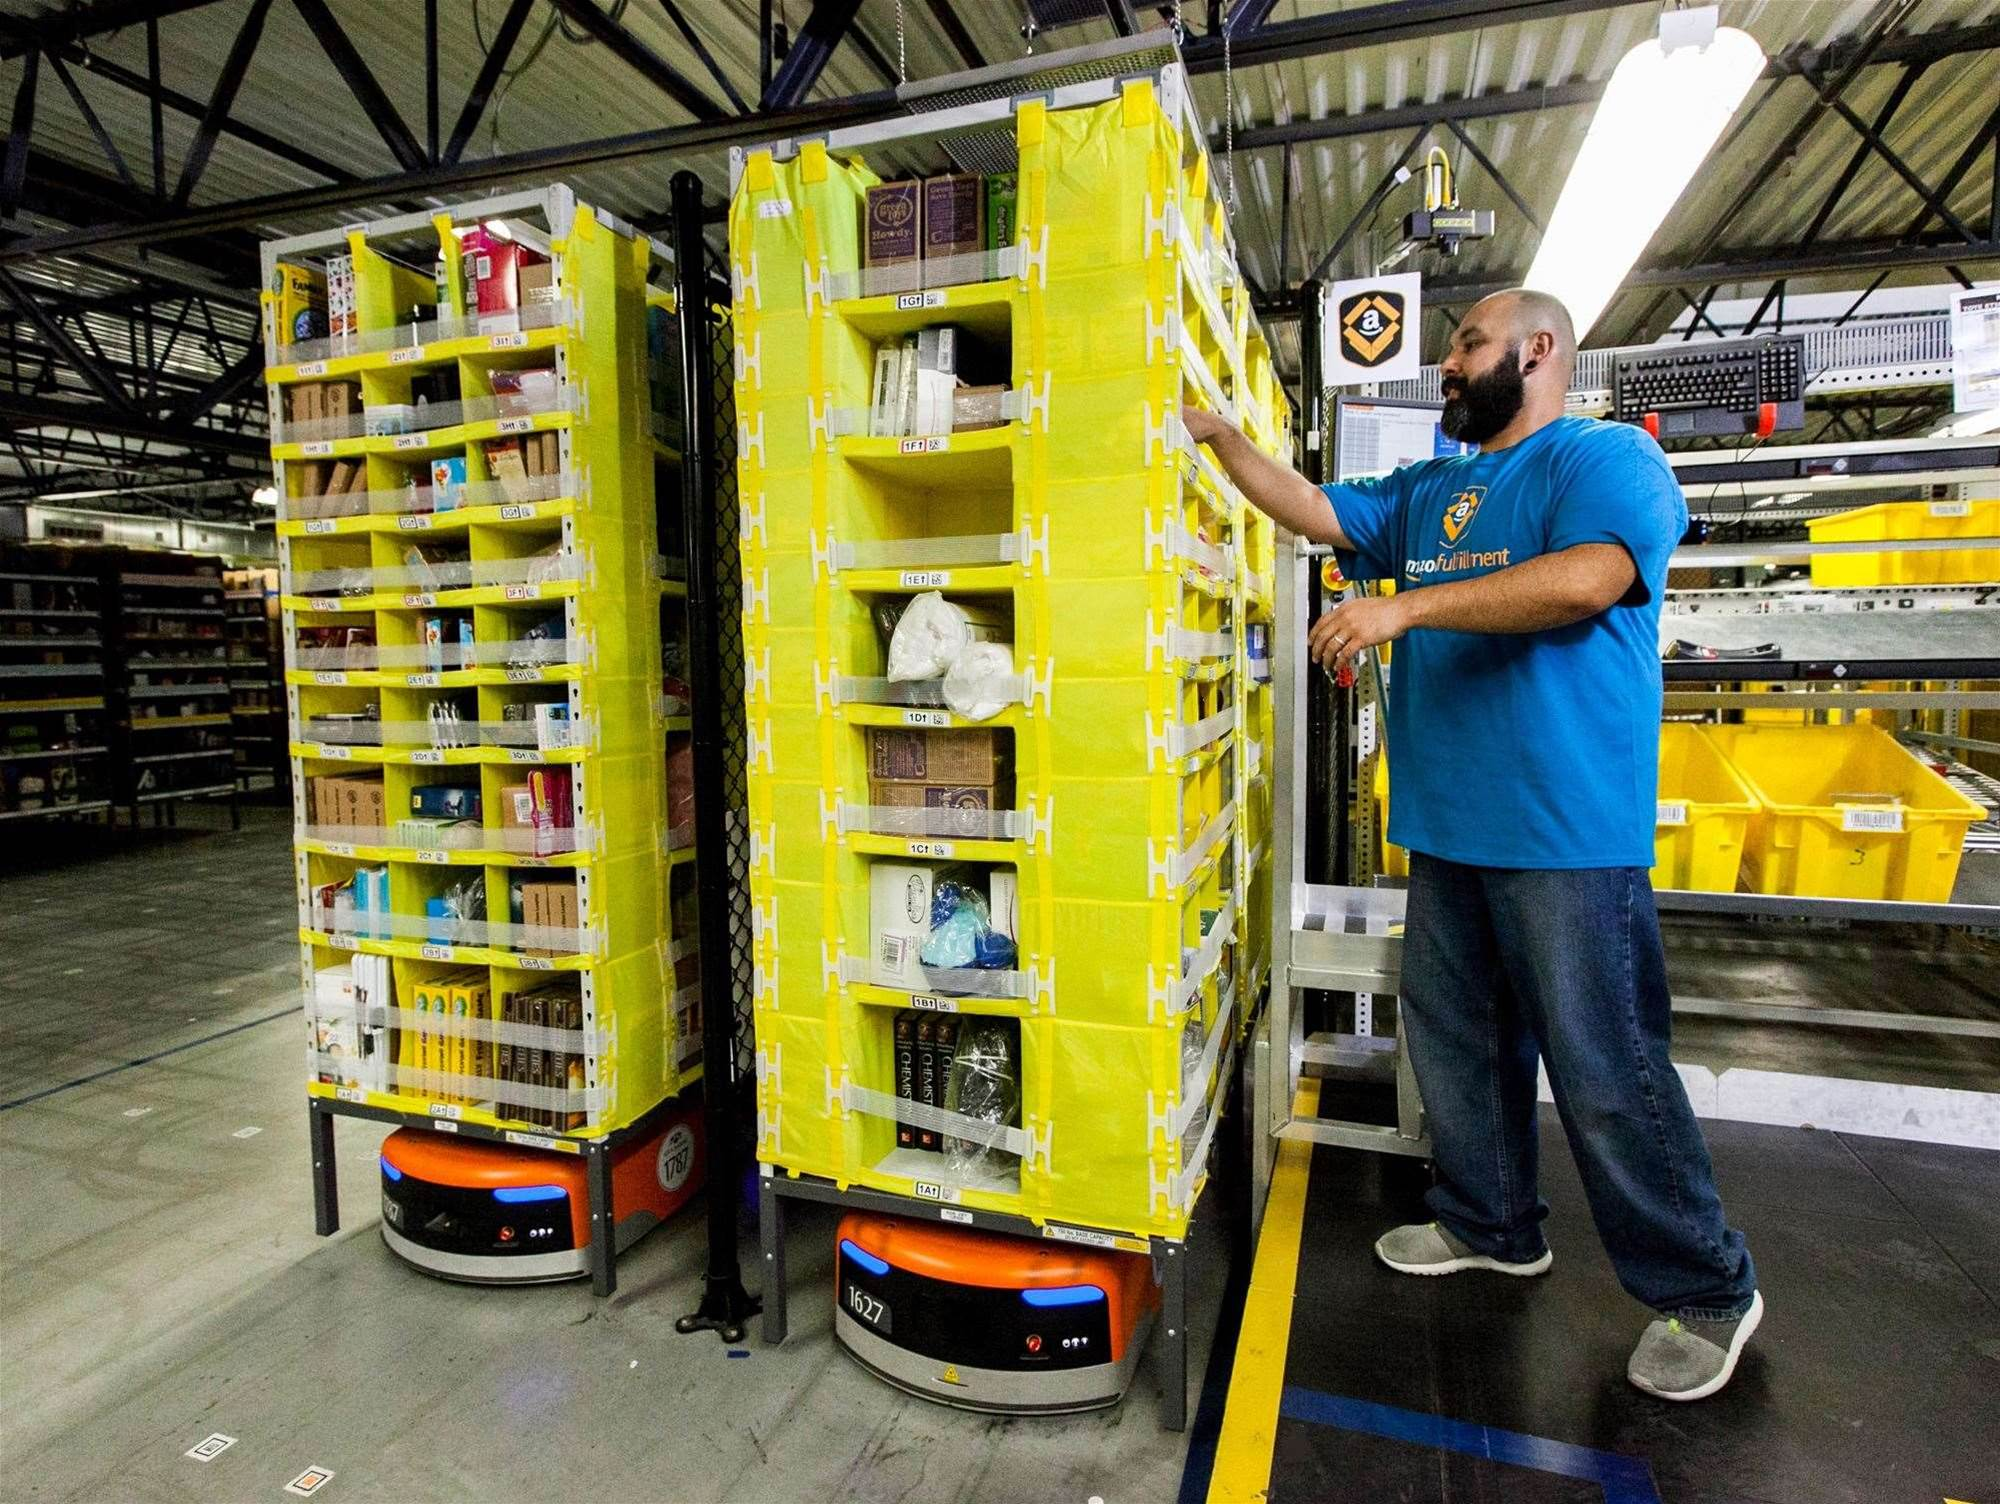 Amazon shows off robot-powered fulfillment centres